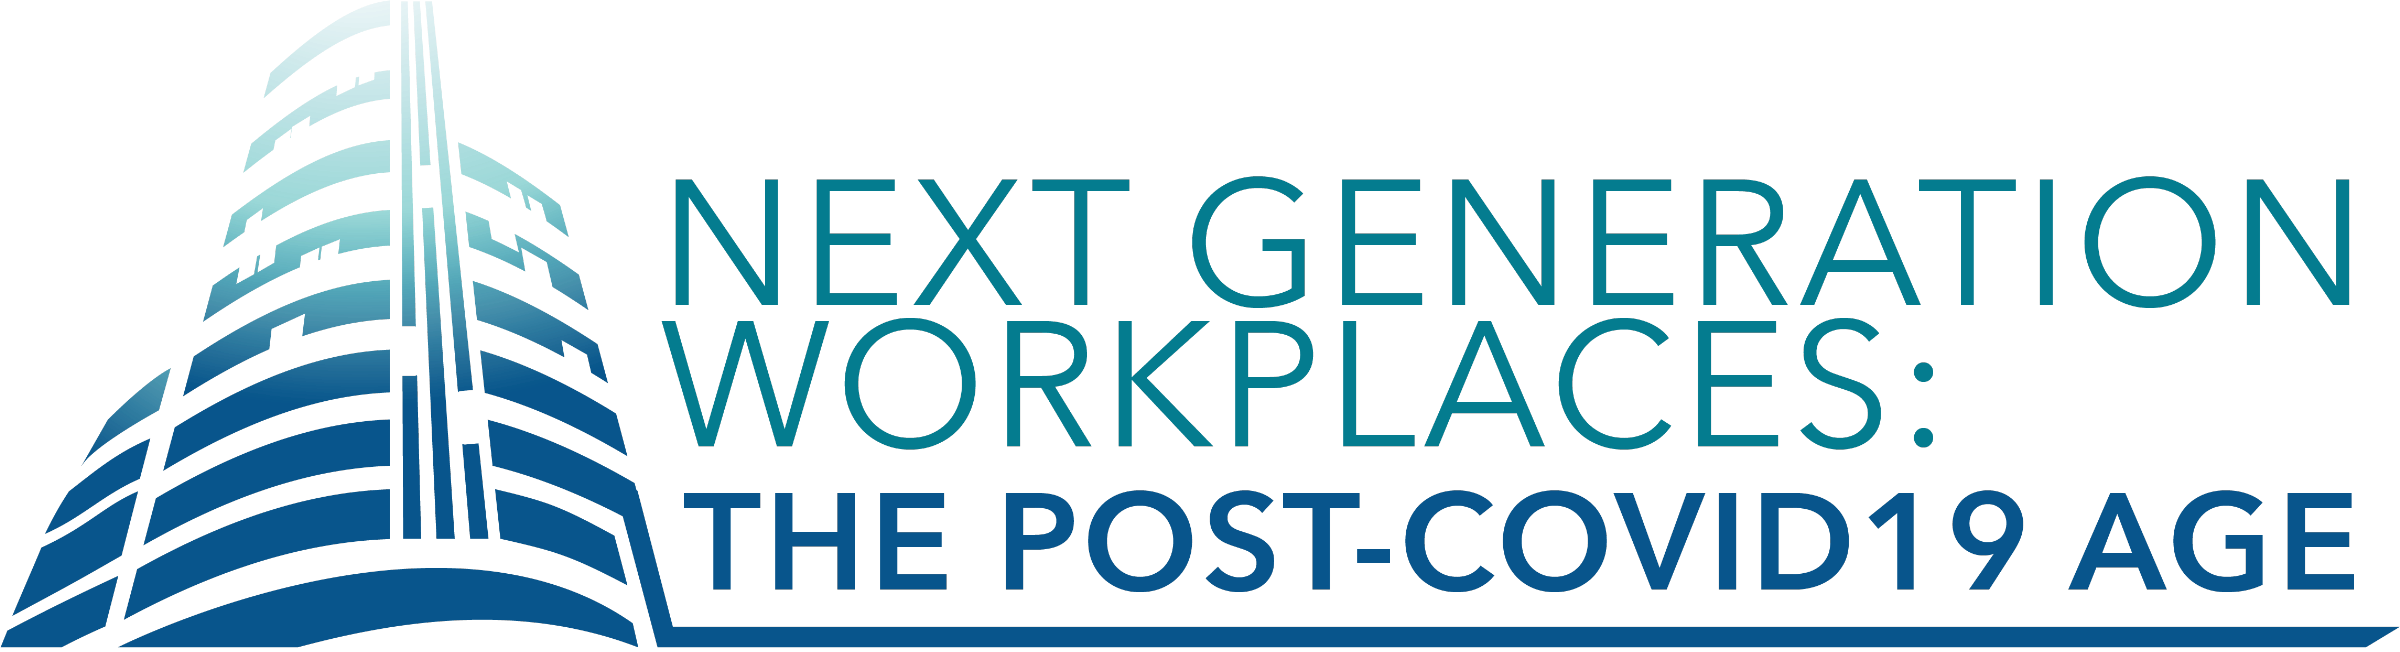 Next Generation Workplaces: The Post-COVID-19 Age